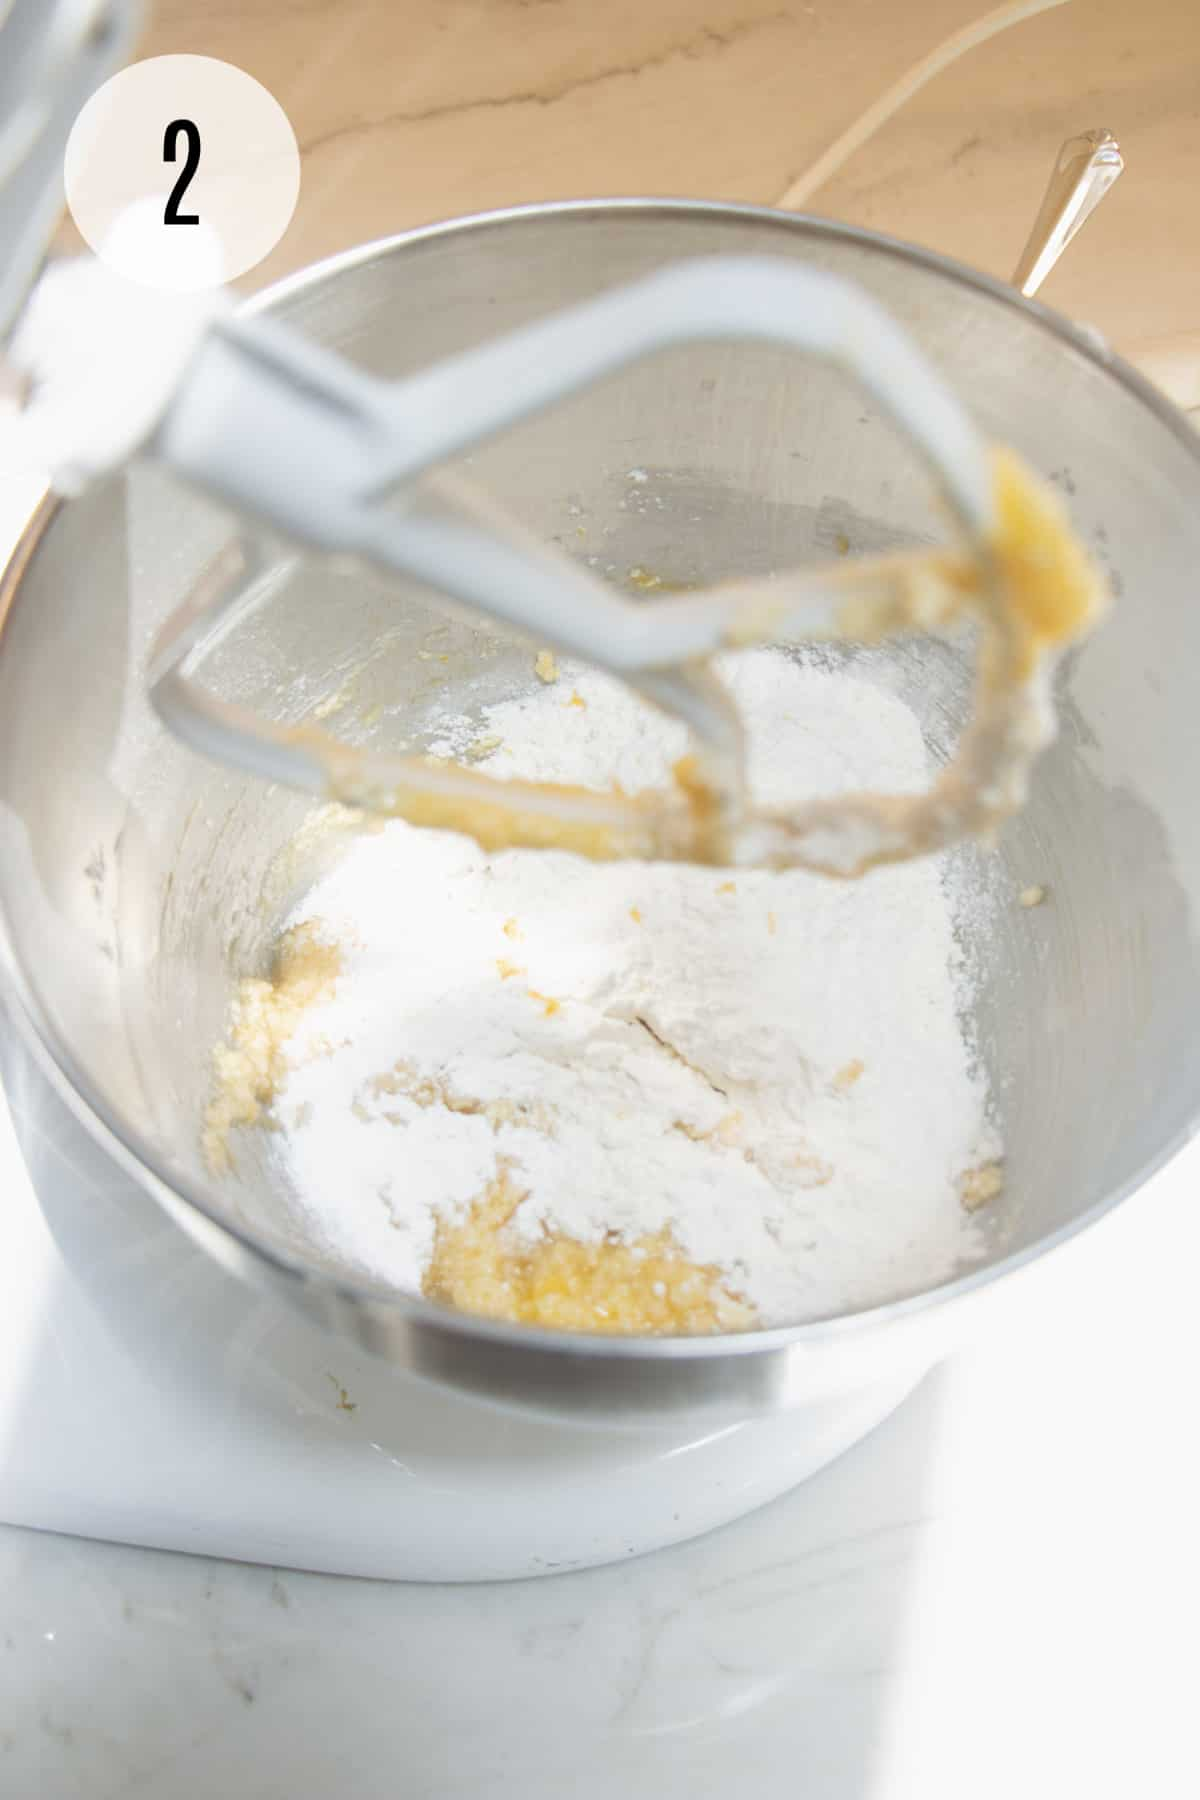 Butter sugar mixture with flour mixture for lemon cookies in a silver bowl mixed by a white mixer paddle.